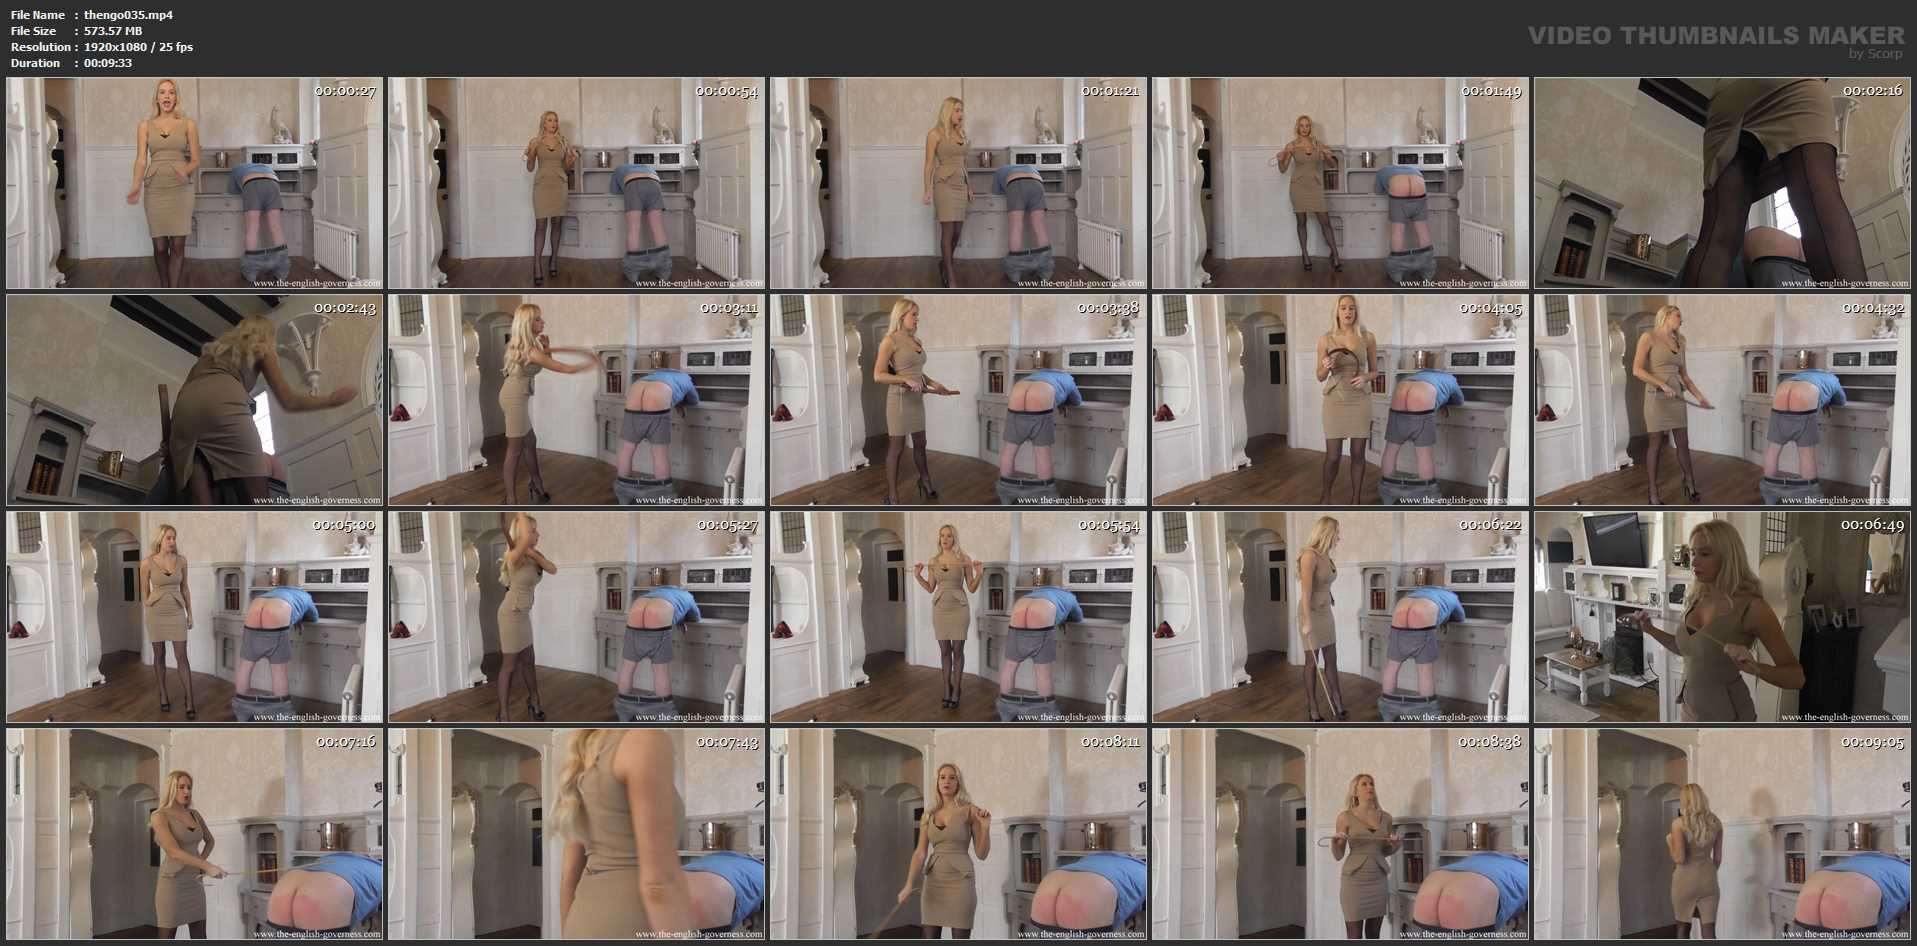 miss Kenworthy In Scene: A caning from miss K - THE-ENGLISH-GOVERNESS - FULL HD/1080p/MP4